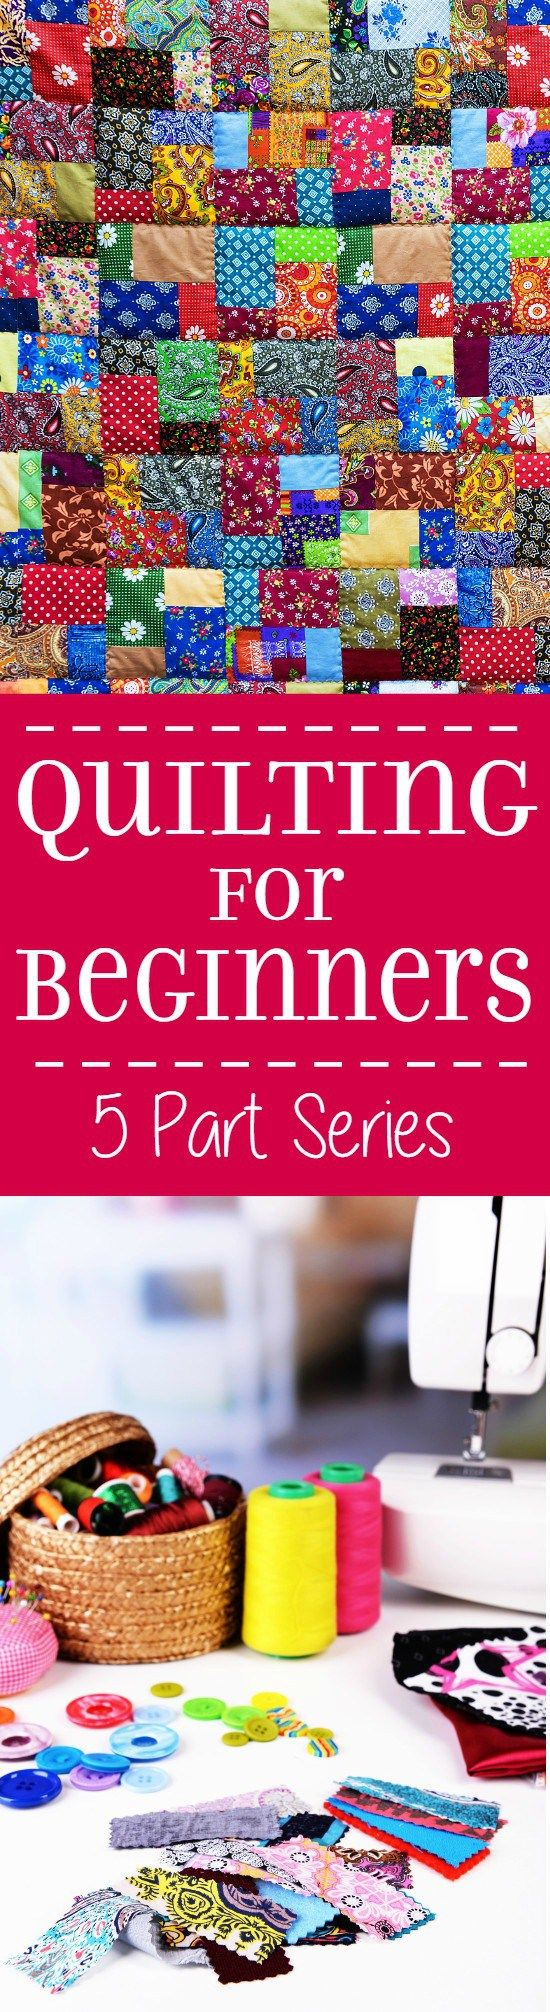 Quilting For Beginners  5 Part Series